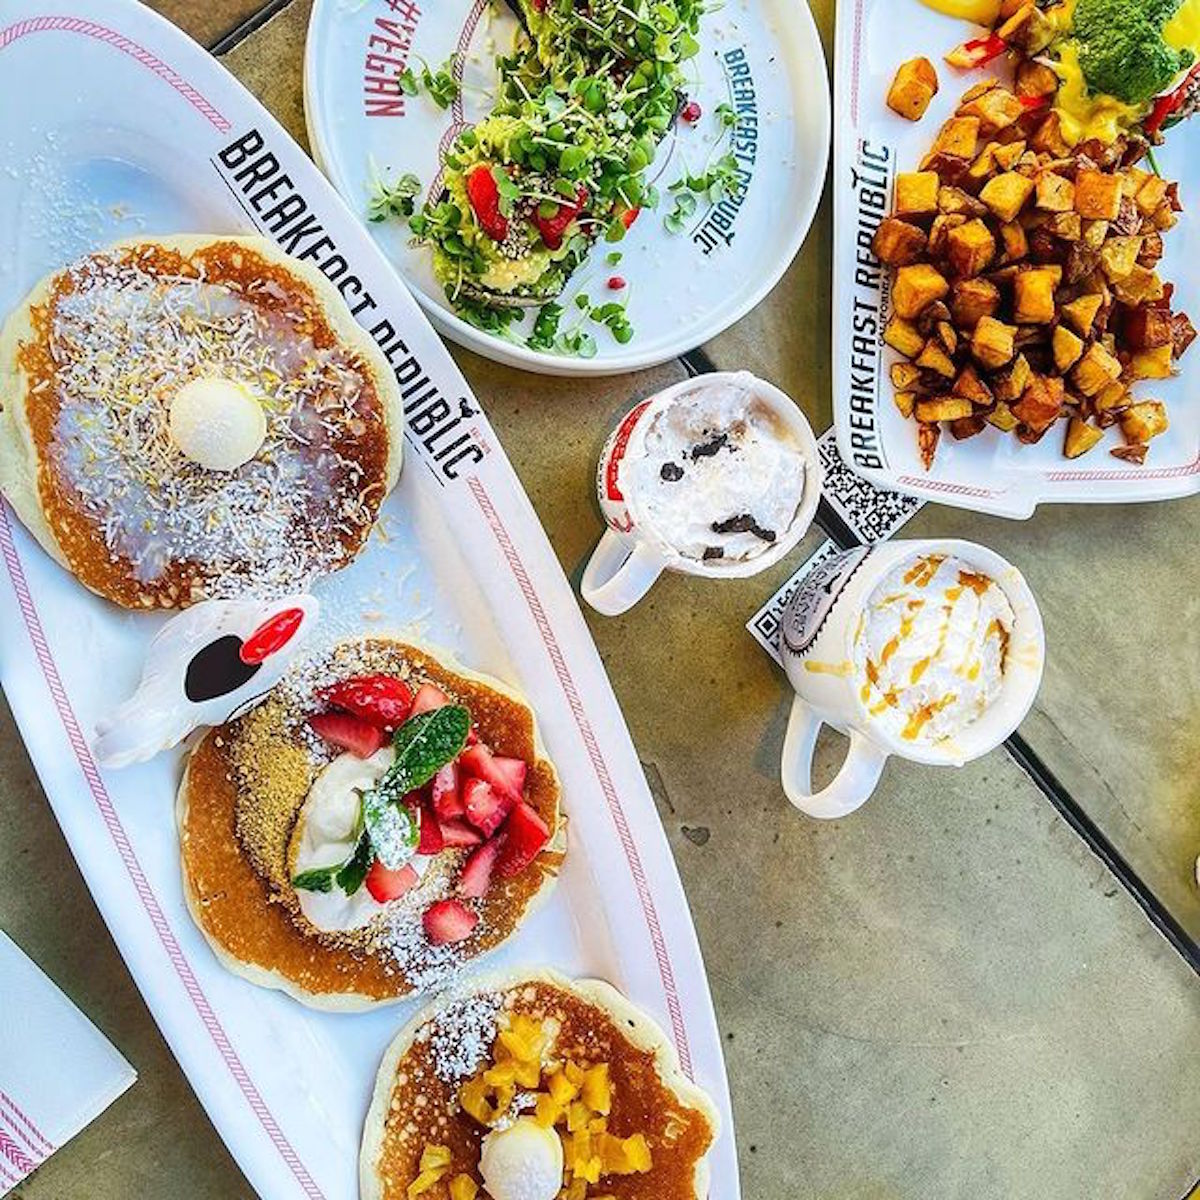 Next Breakfast Republic Moving Forward in La Jolla